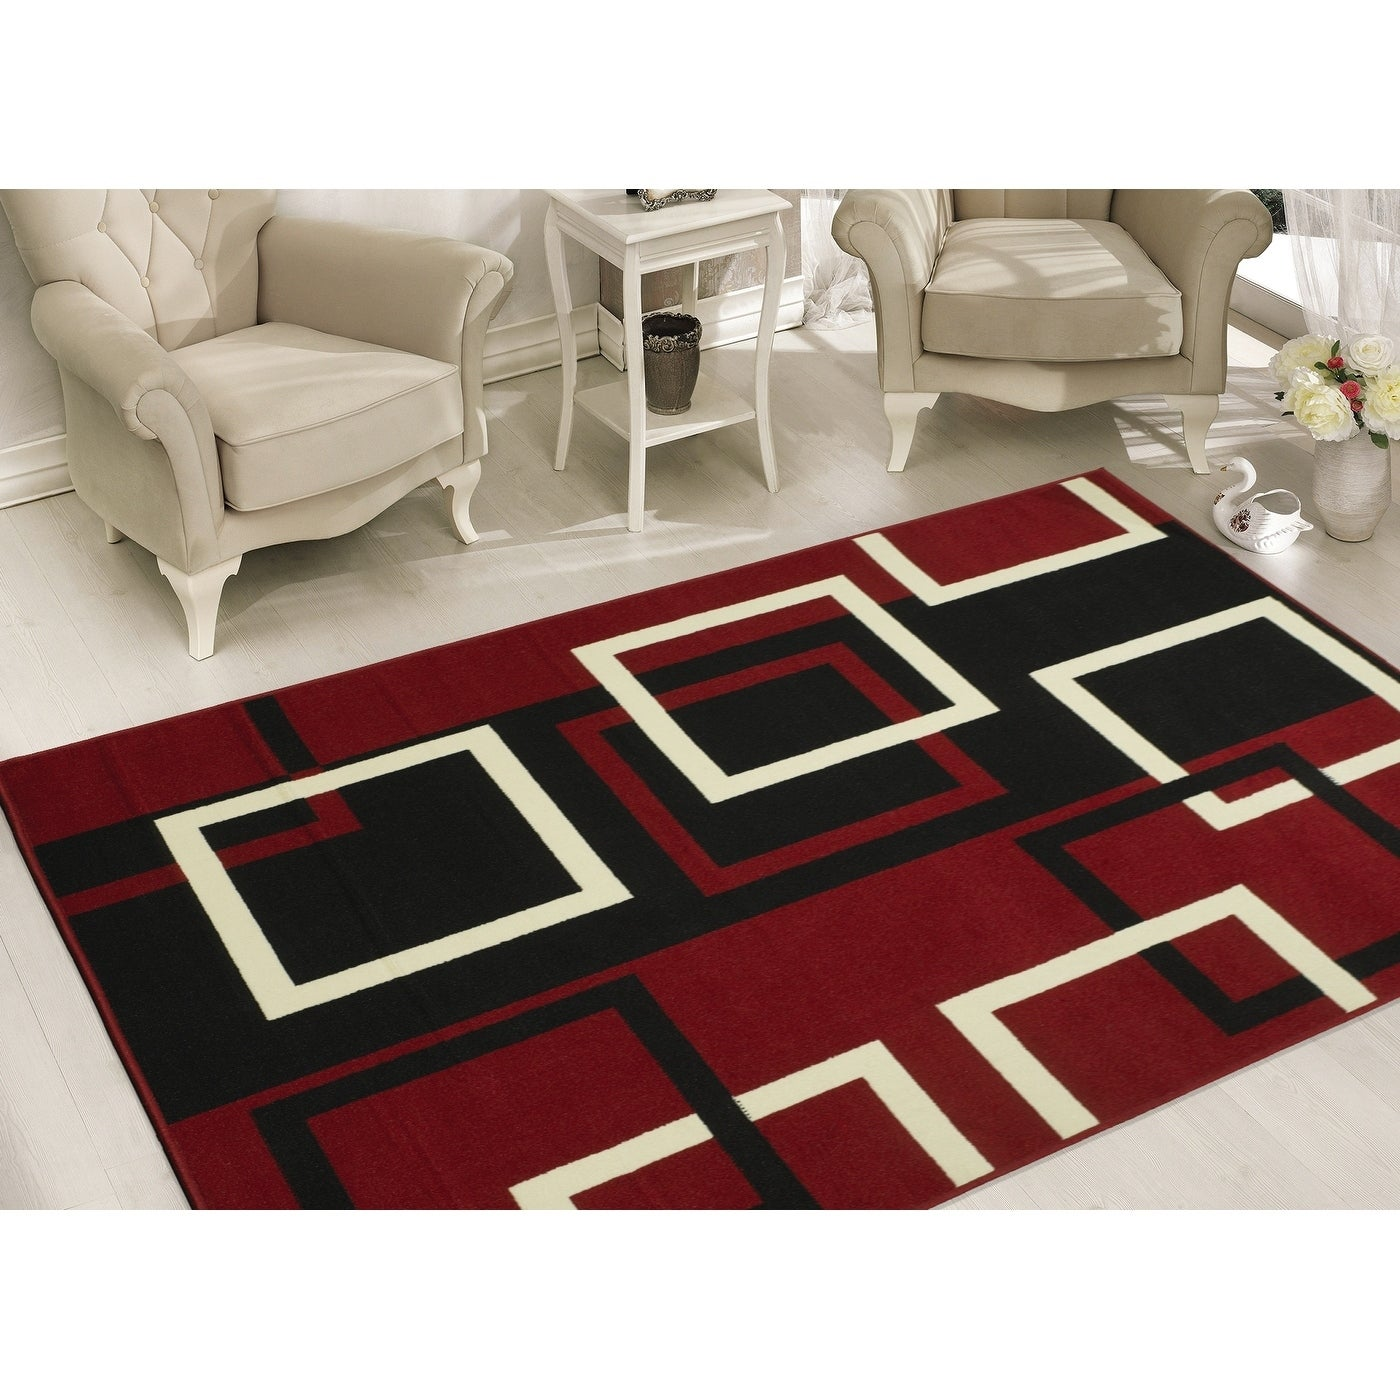 black x dark sweet free shipping boxes overstock today area red home stores geometric garden modern product white rug